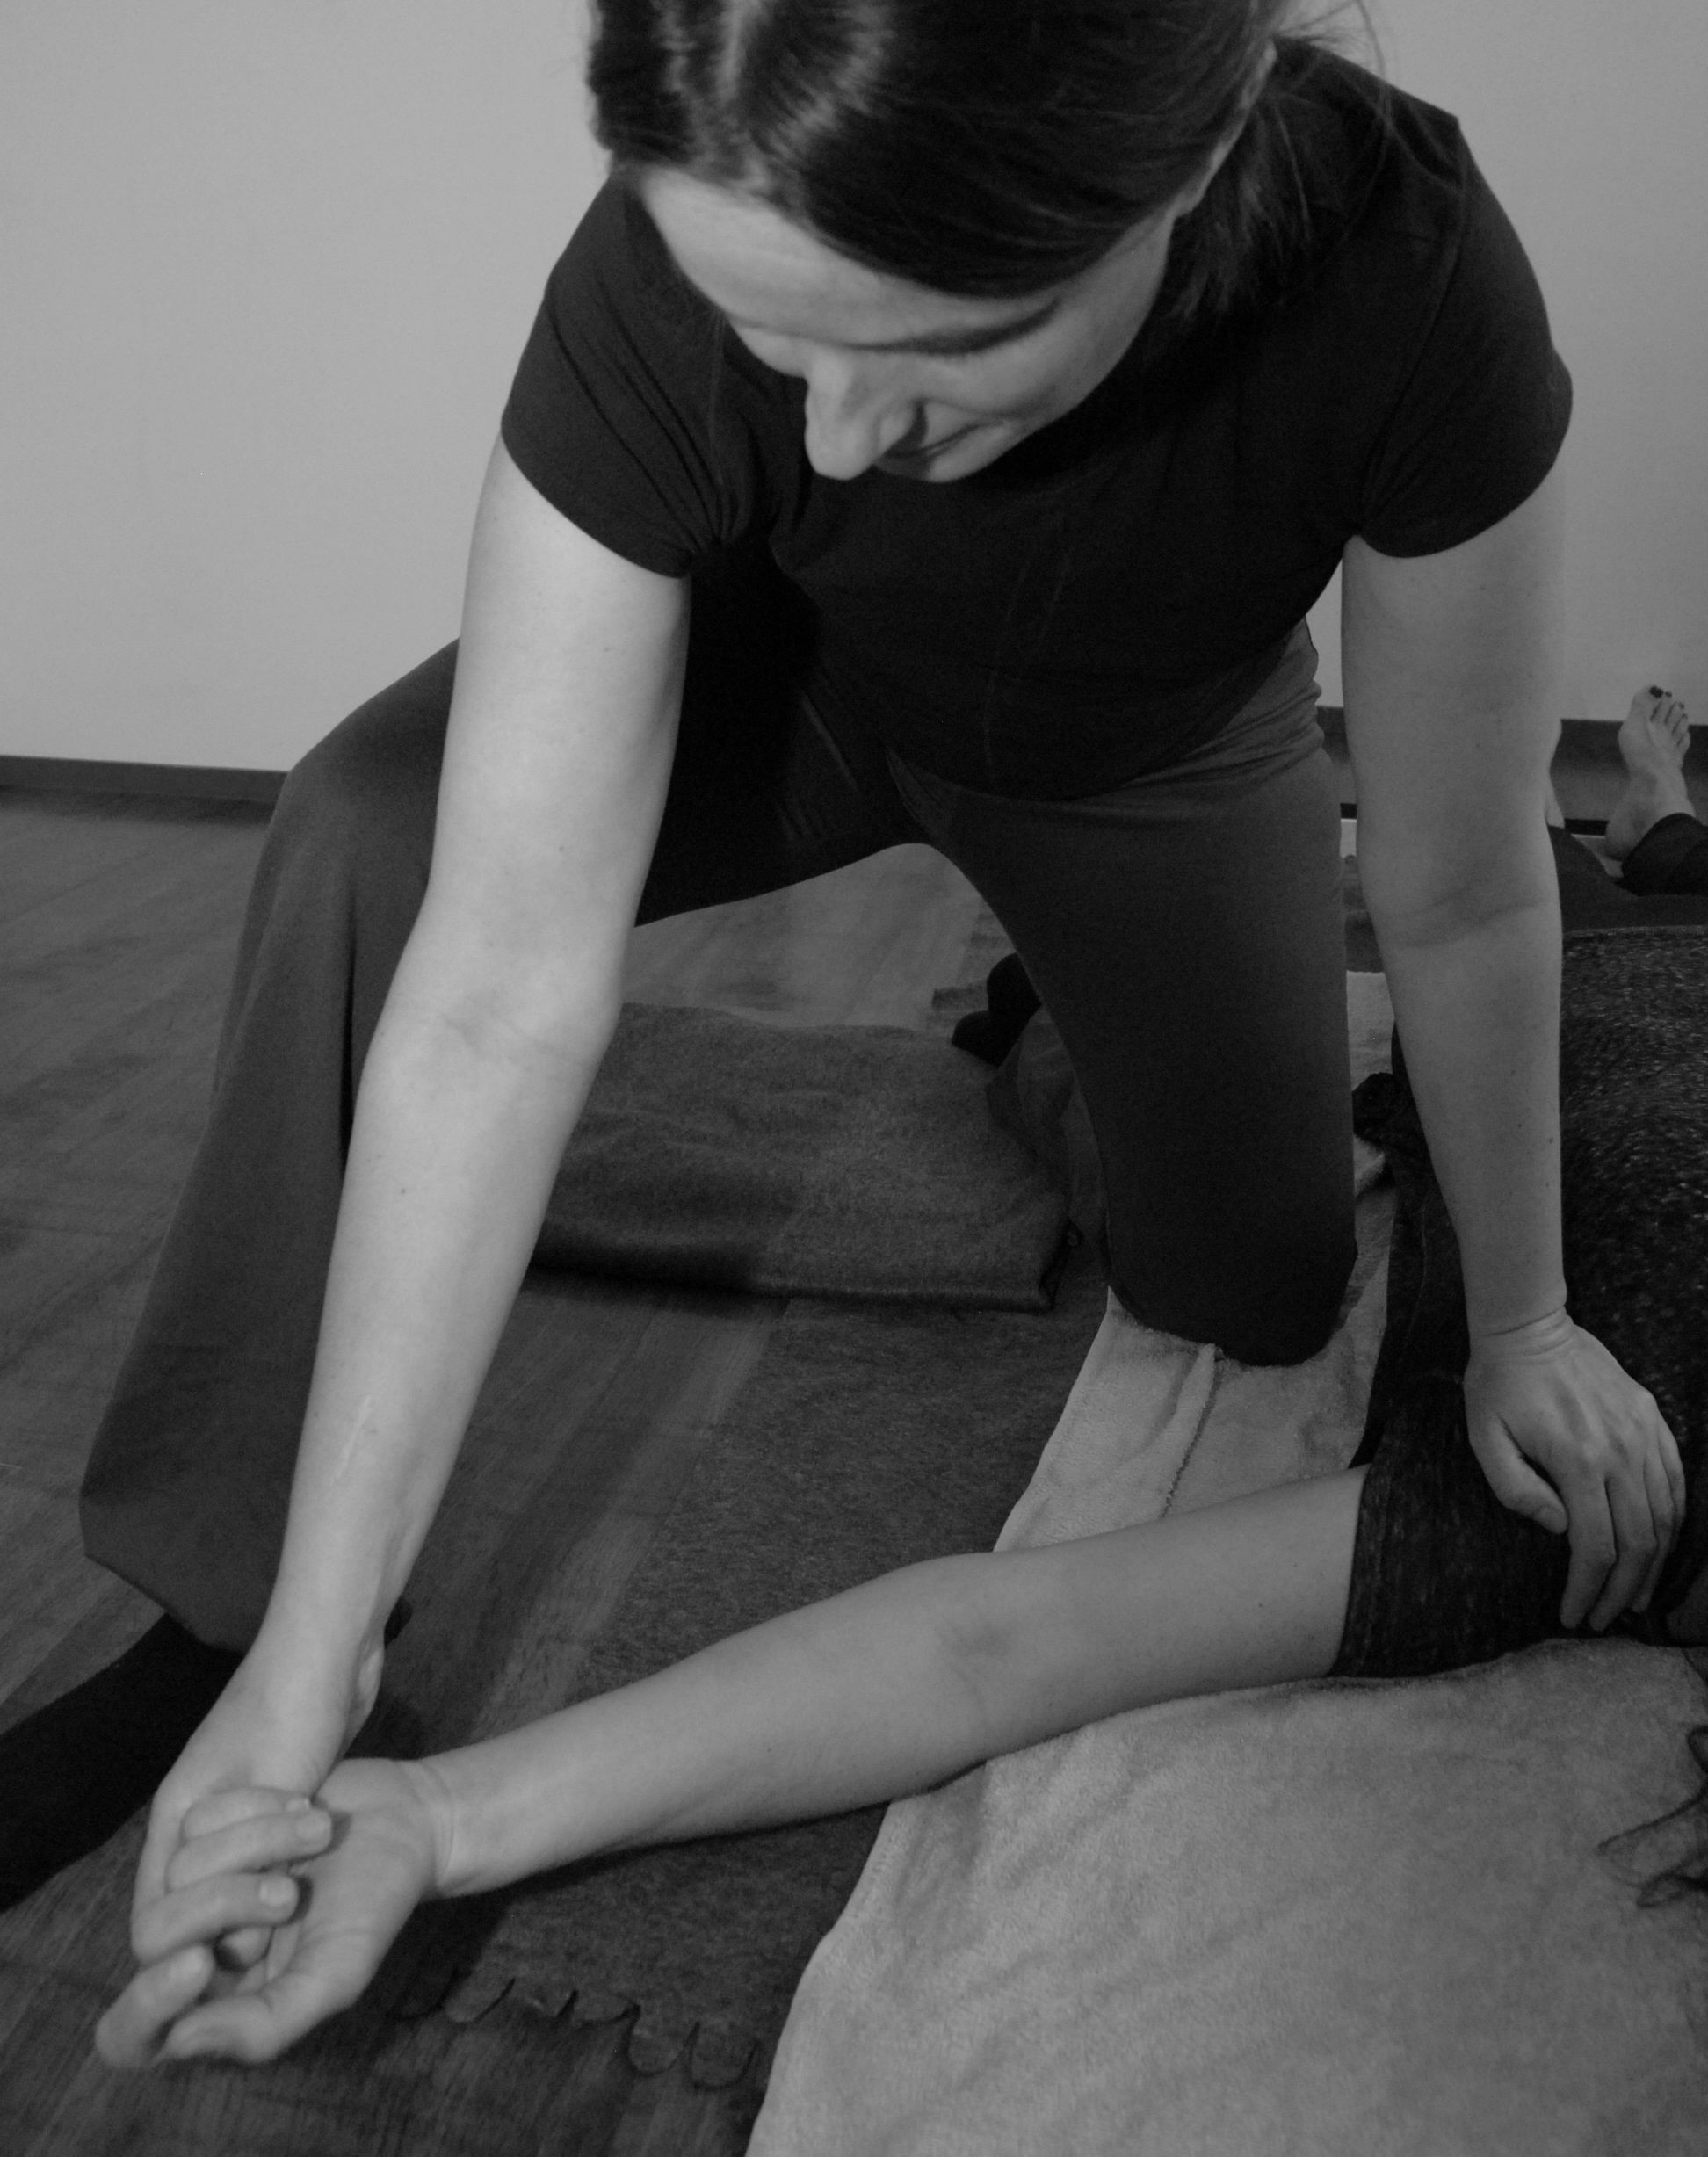 shiatsu massage therapie delft ypenburg nootdorp